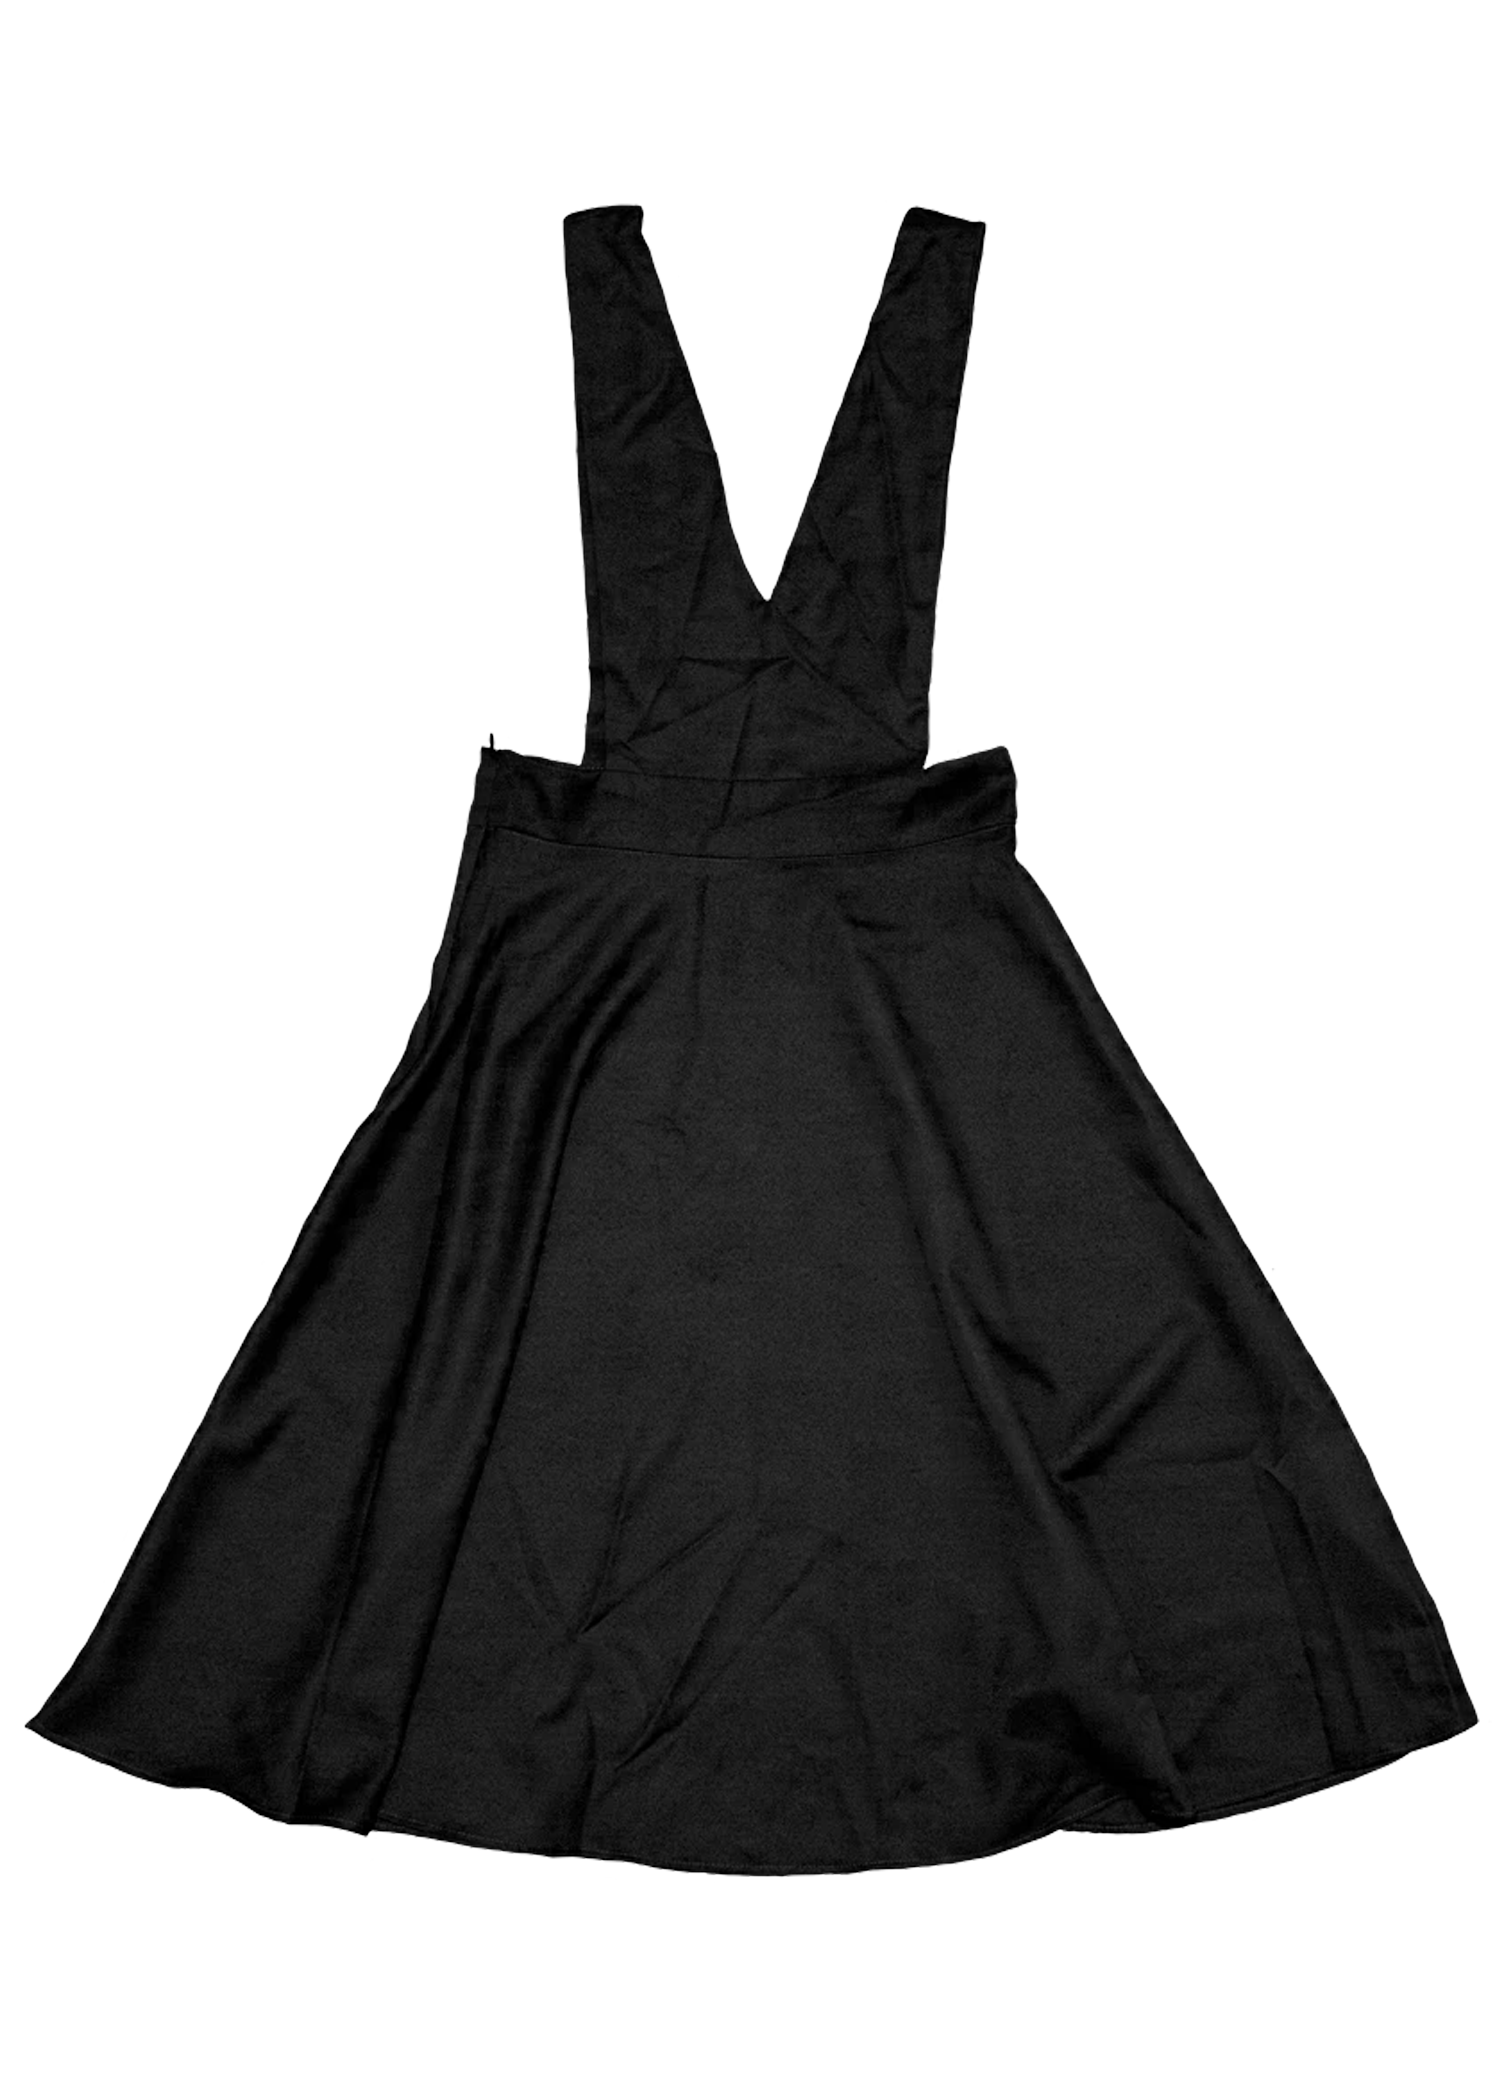 V-Cut Pinafore Skirt in Black